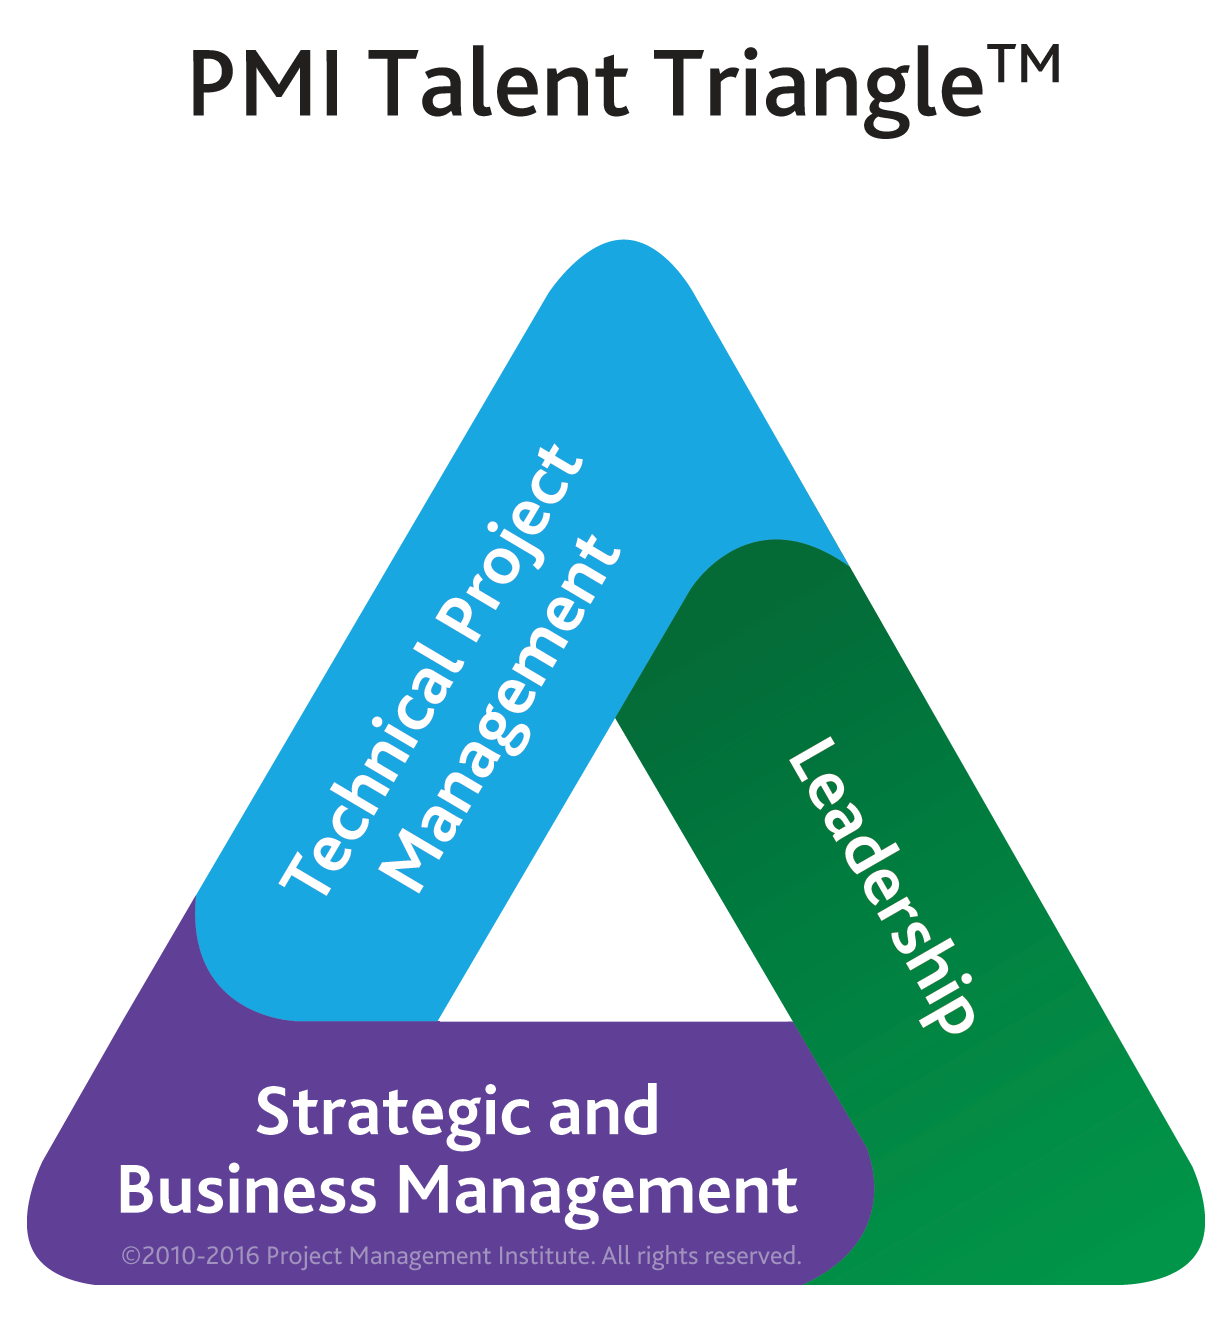 pmi-talent-triangle-updated-01-05-2016